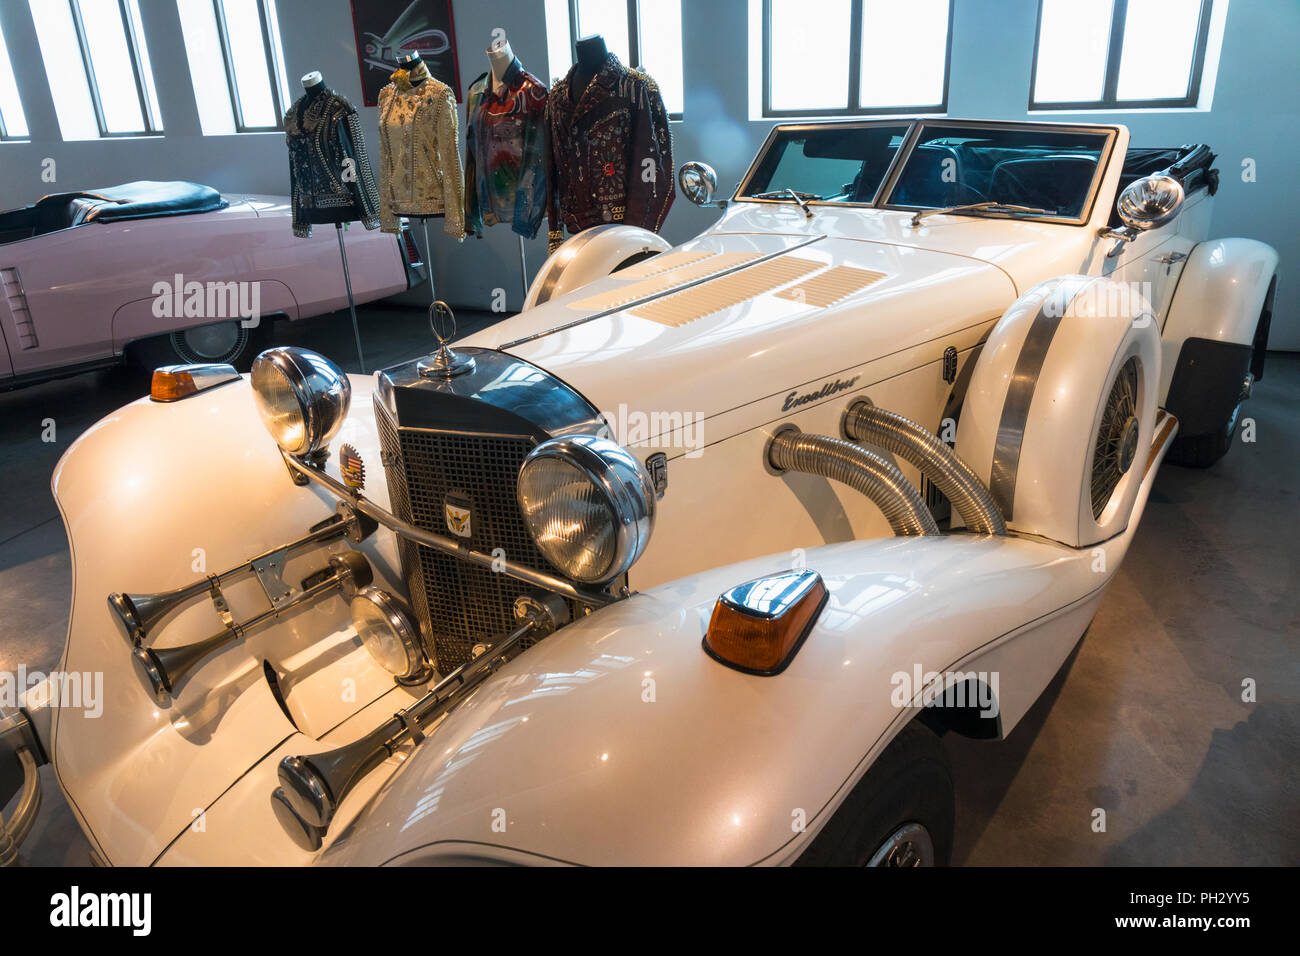 Museo Automovilistico y de la Moda, Malaga, Malaga Province, Spain.  Automobile and Fashion Museum.  The limited edition V8, 155 HP, 5000 cc, Model IV - Stock Image